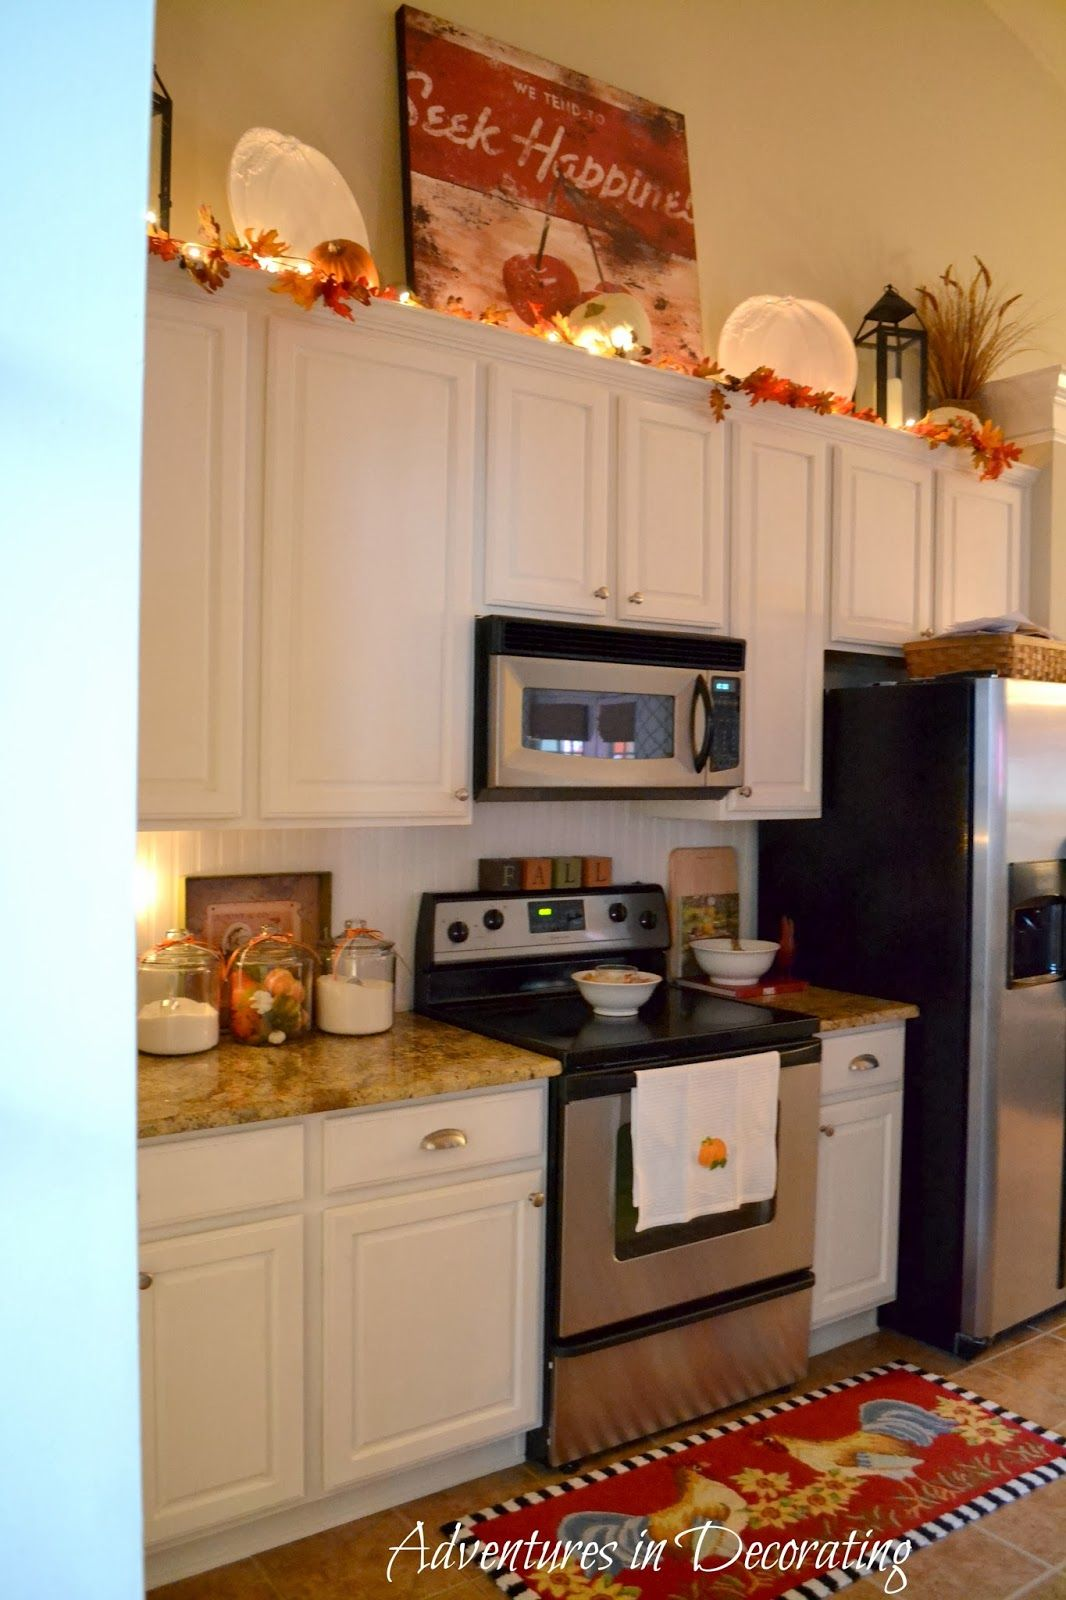 kitchen with fall decor. Rug, towels and small pumpkins